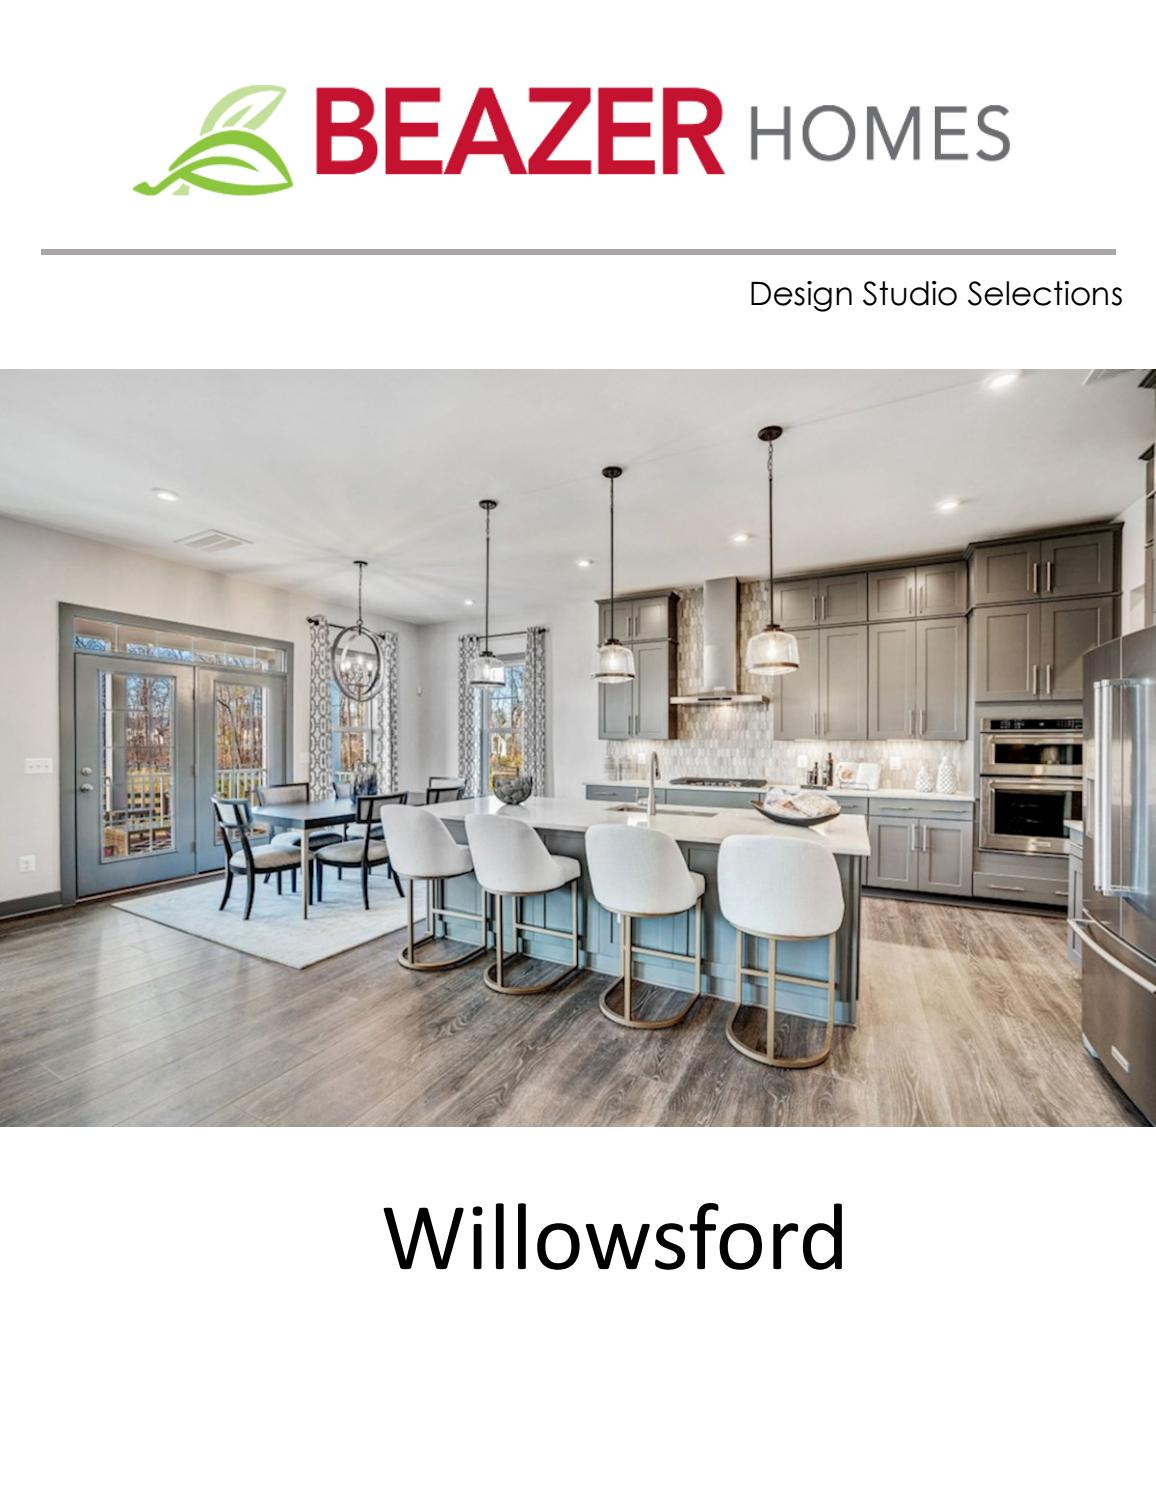 Beazer Homes At Willowsford Design Studio Preview By Beazer Virginia Issuu